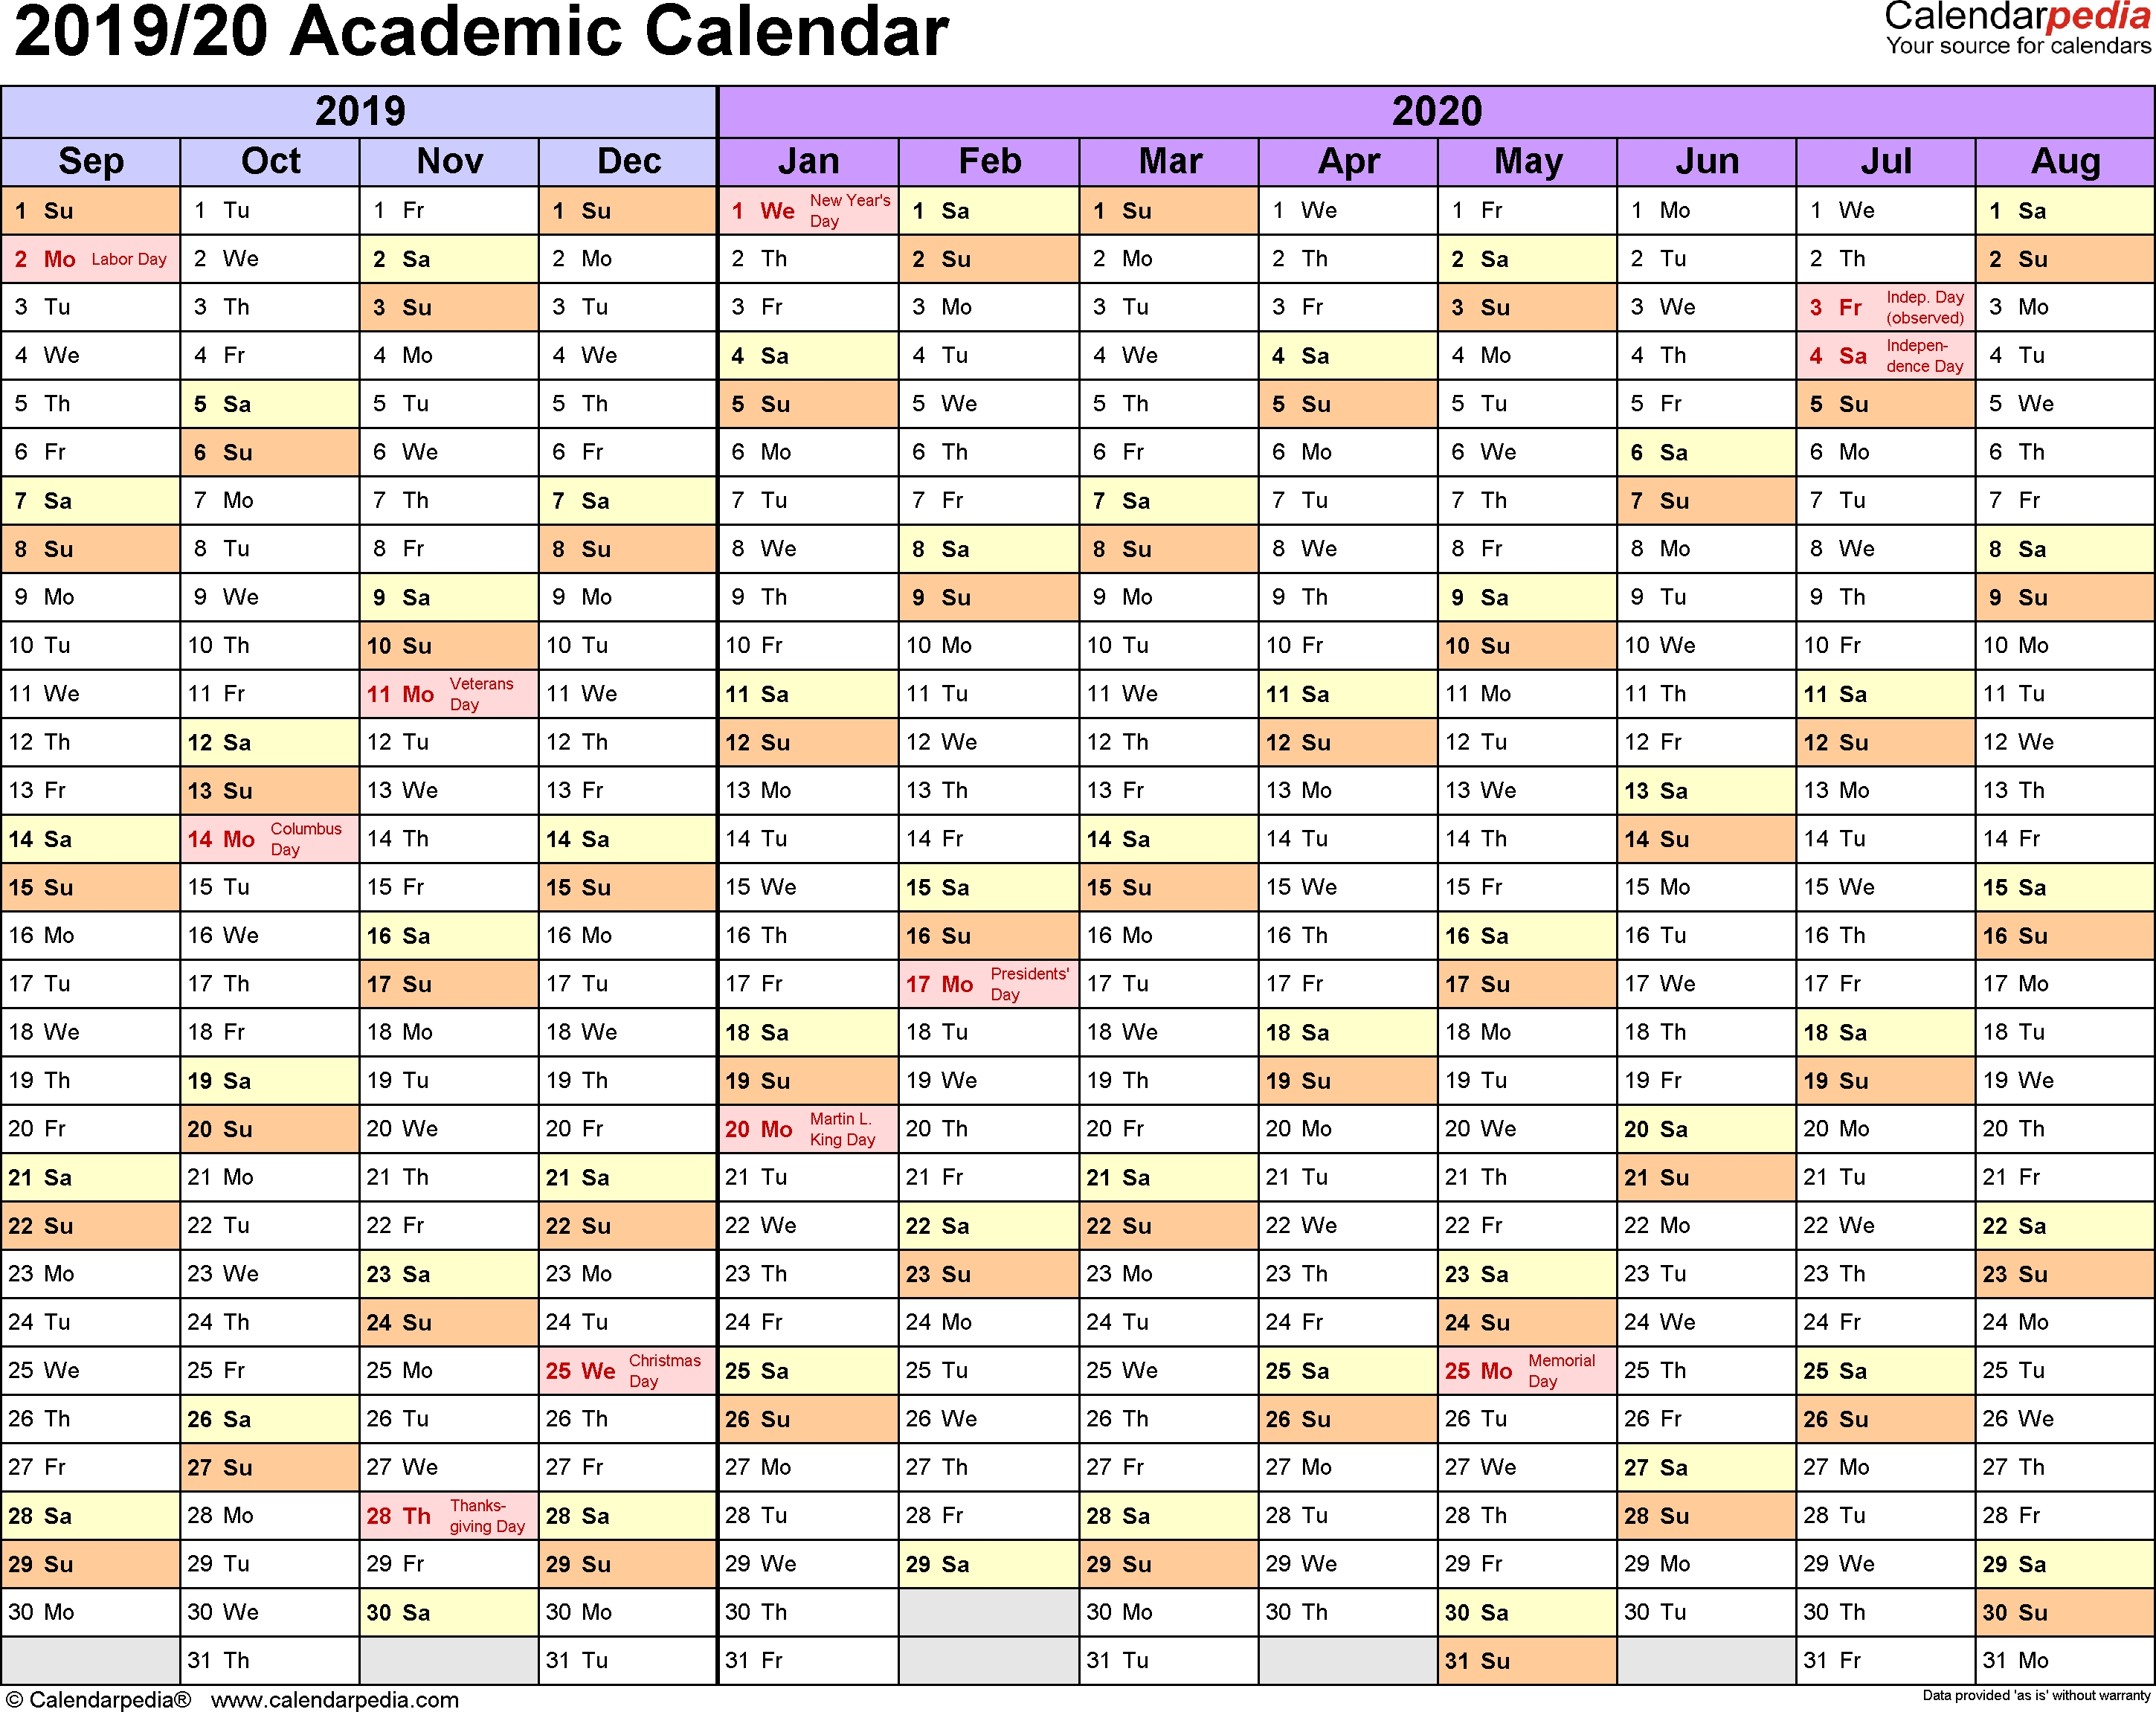 Academic Calendars 2019/2020 - Free Printable Excel Templates-Fiscal Year 2020 Academic Calendar Template